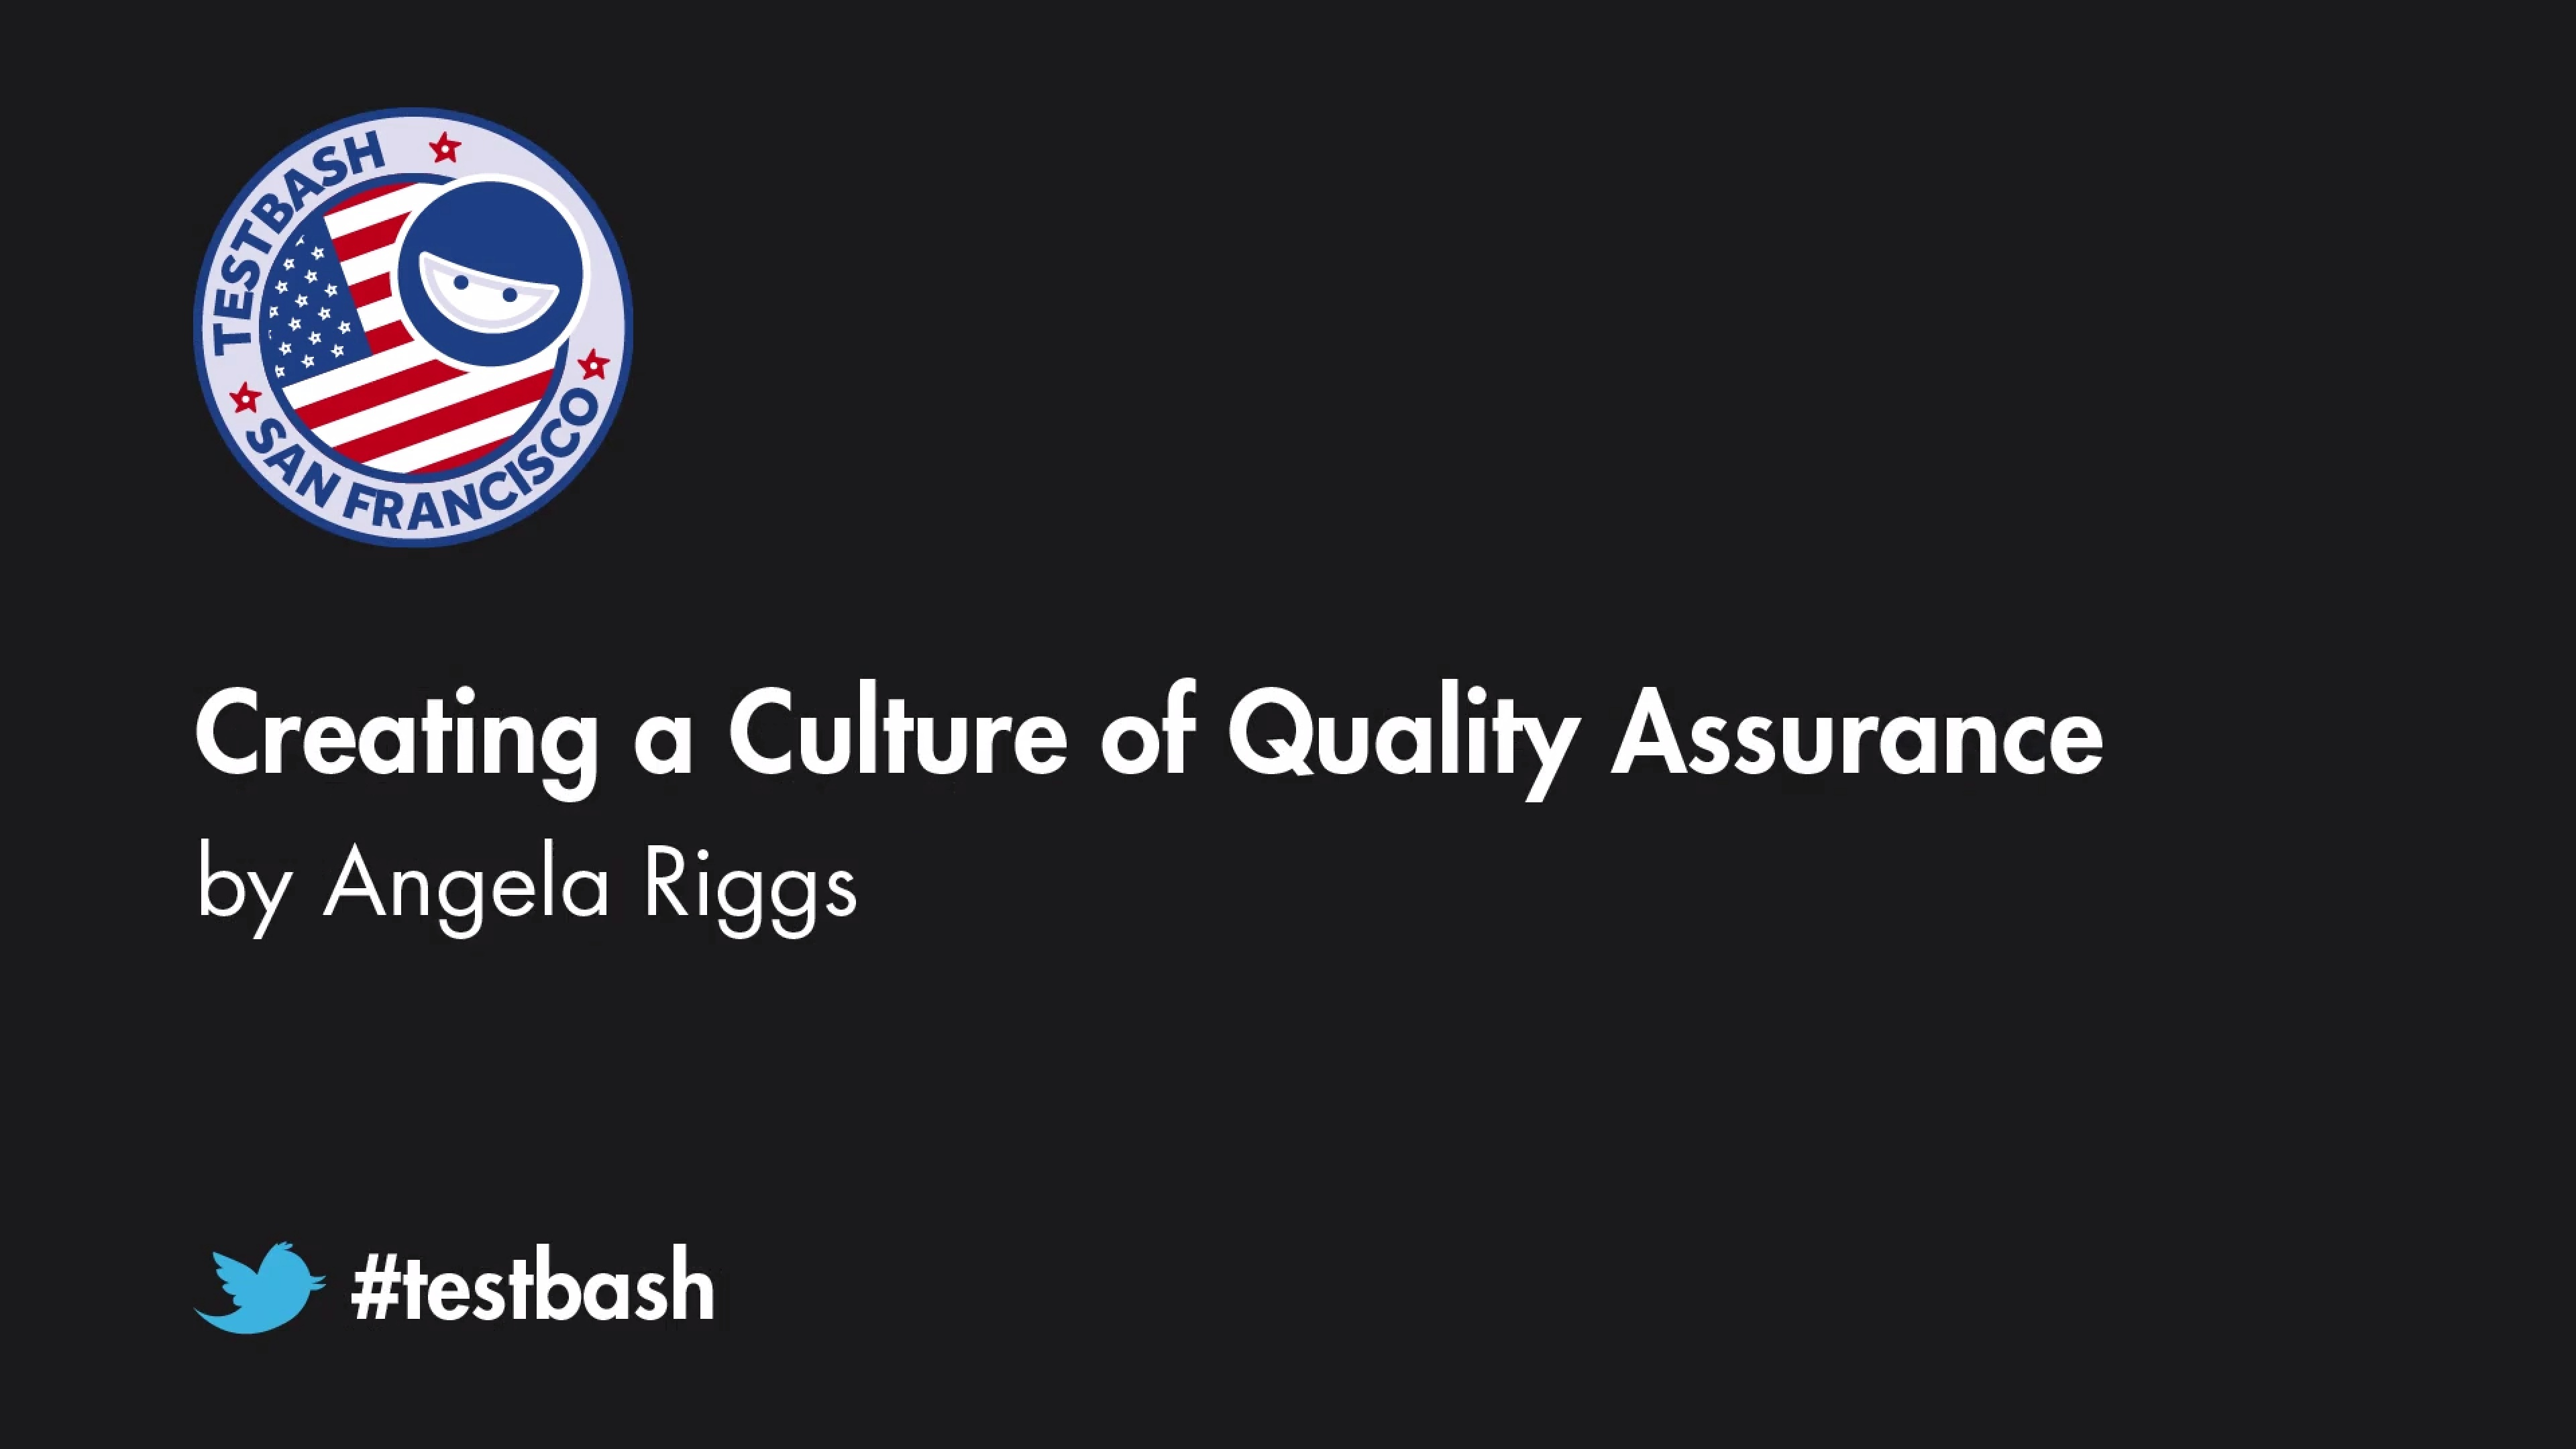 Creating a Culture of Quality Assurance - Angela Riggs